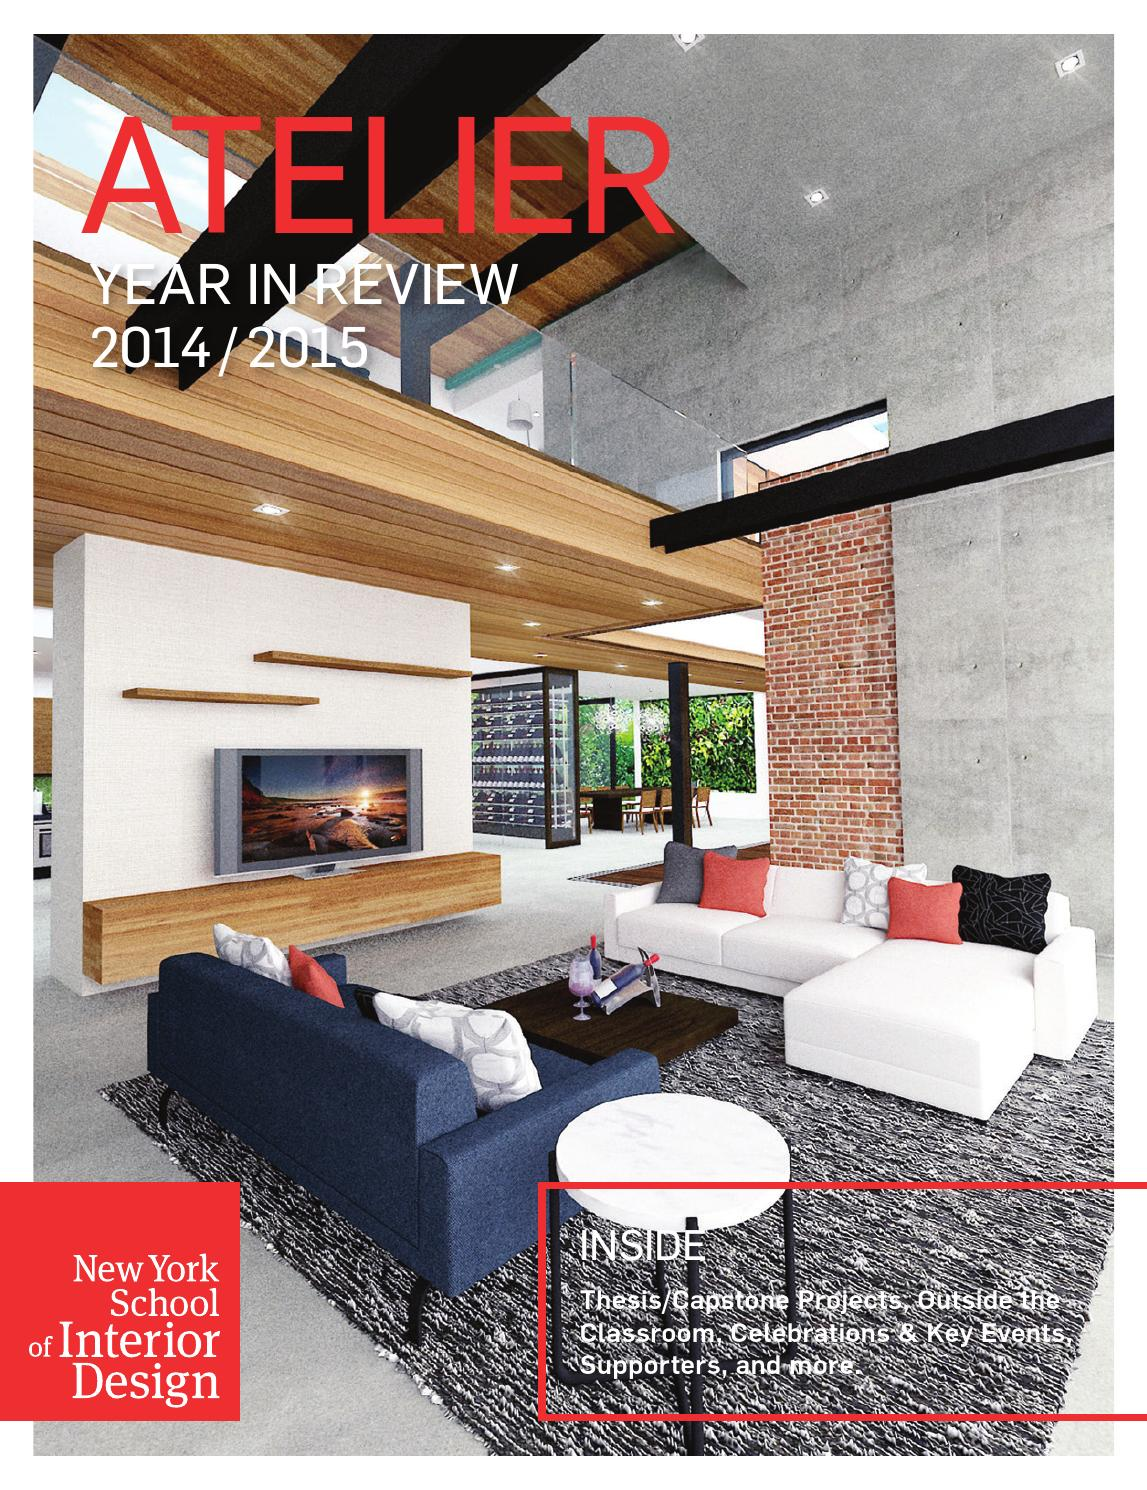 Atelier Year In Review 2014 2015 By New York School Of Interior Design